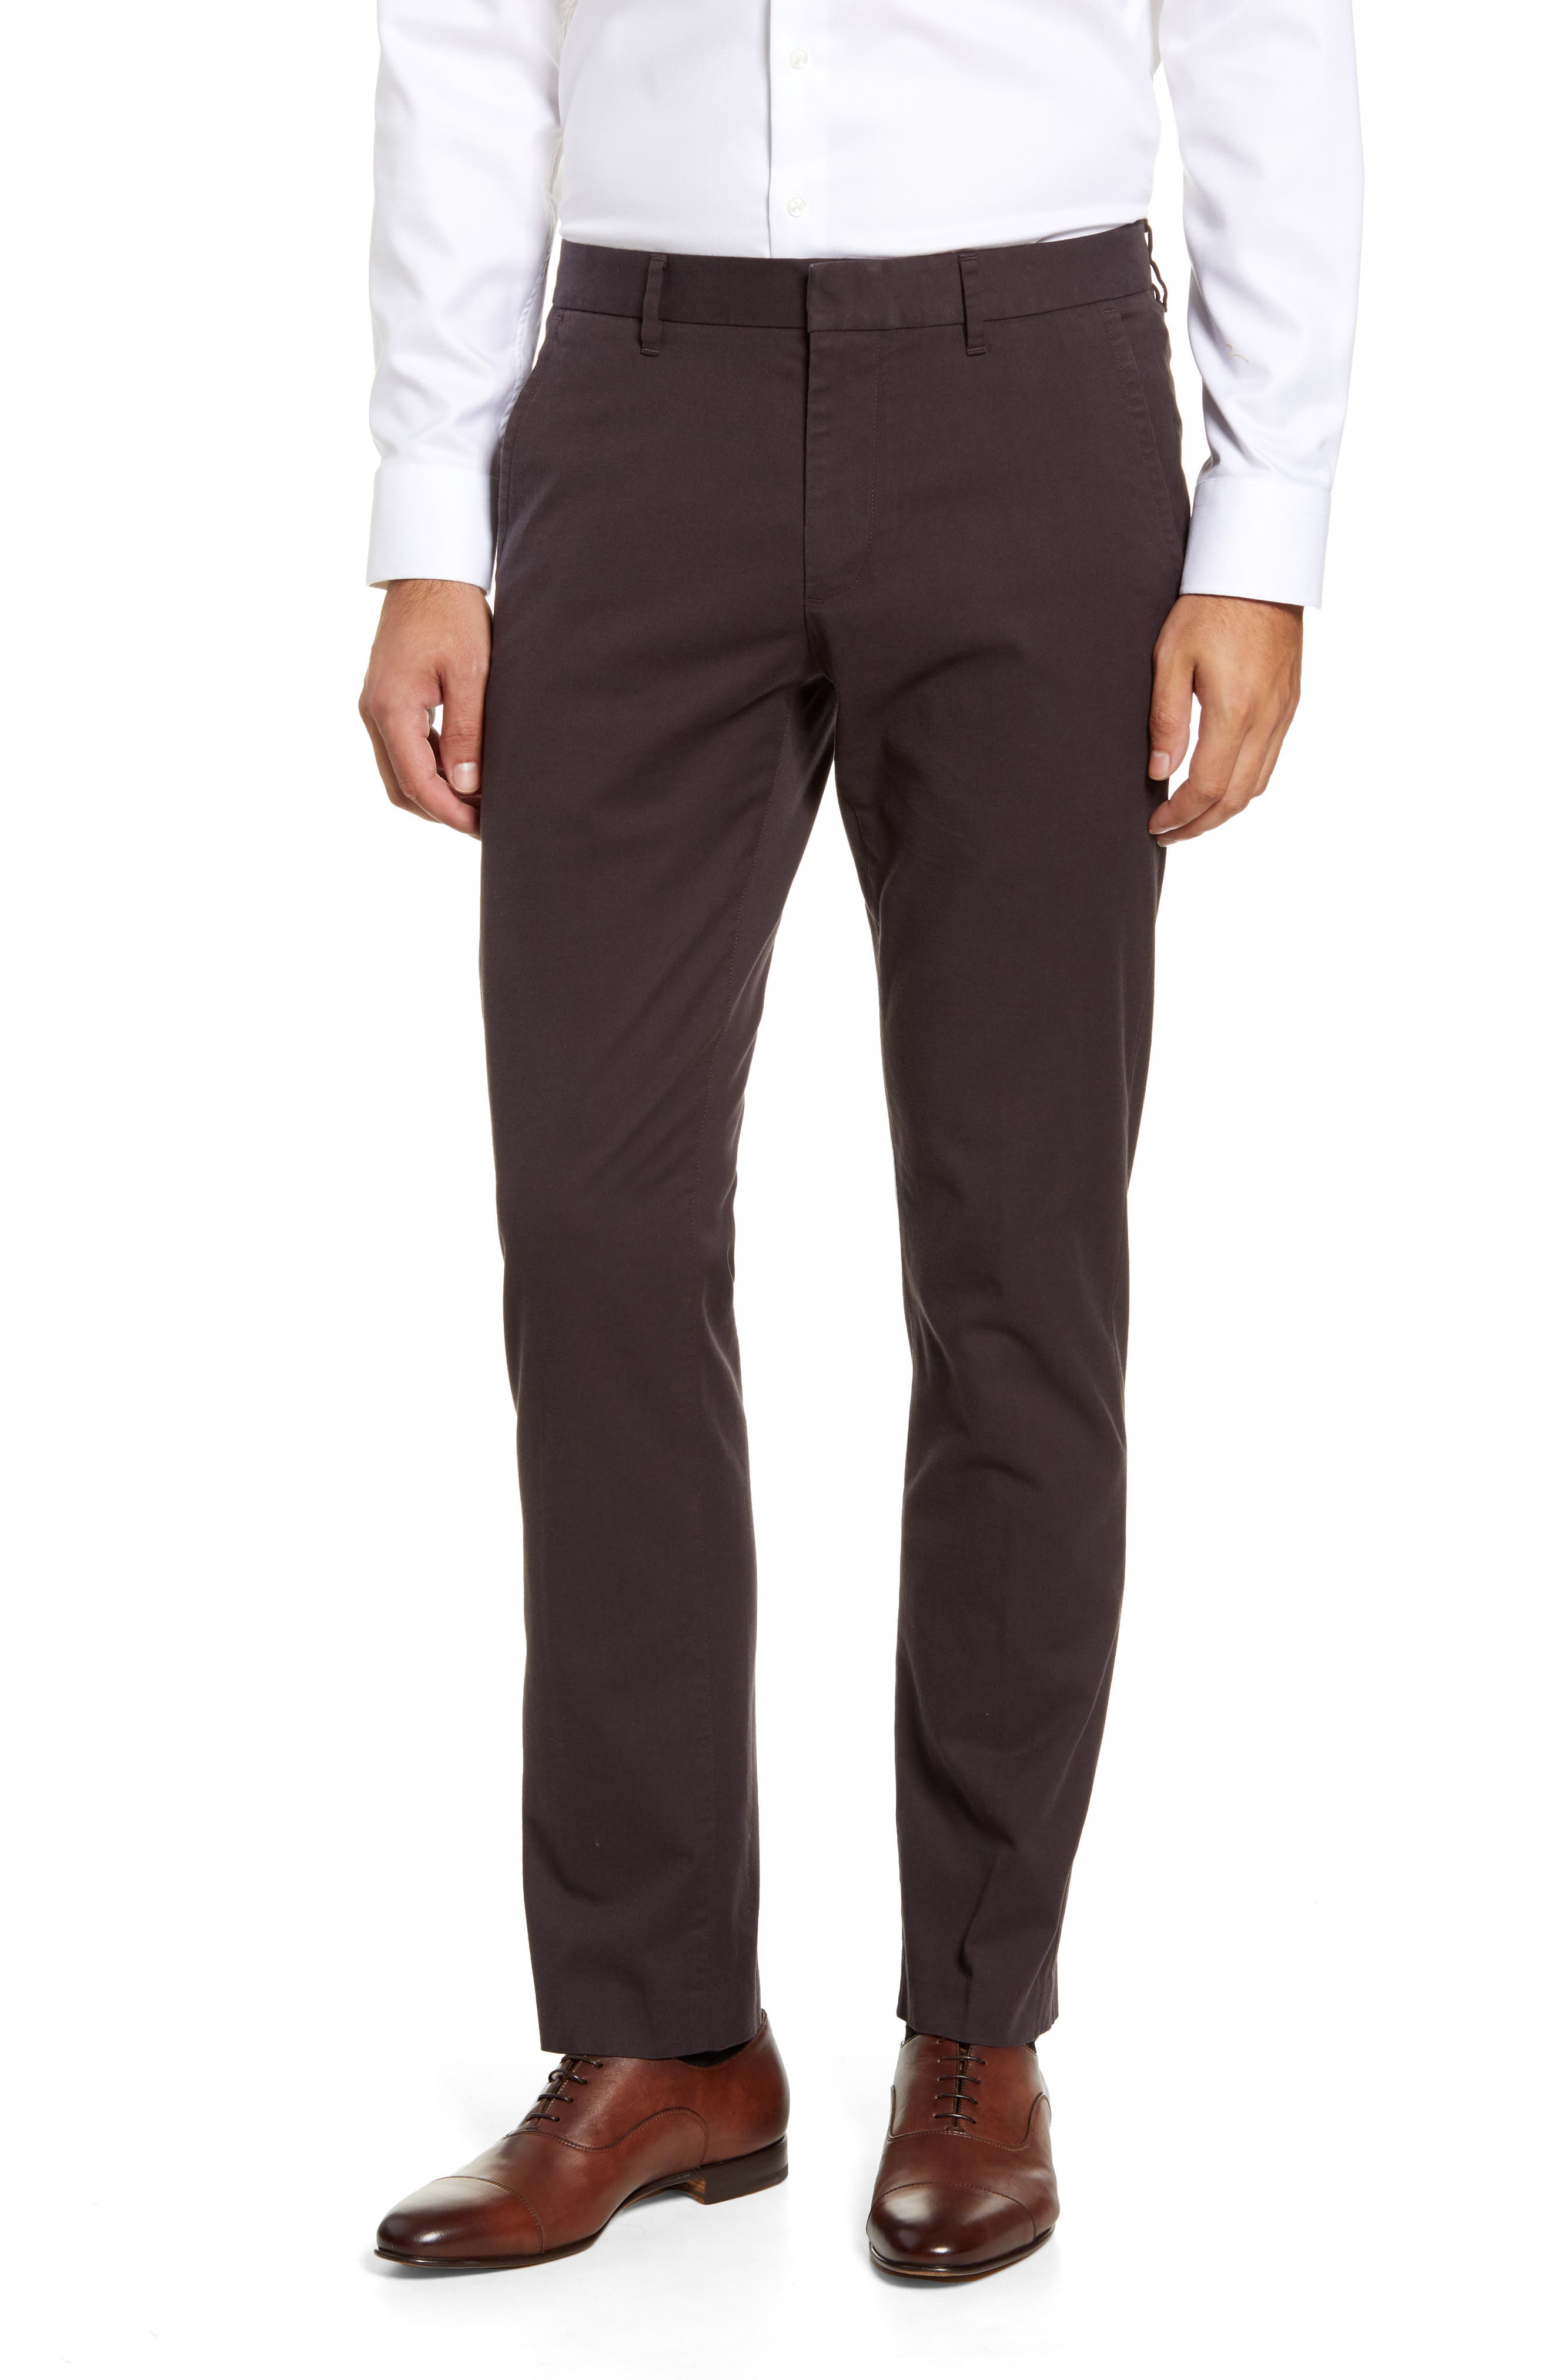 Men's Flat Front Big & Tall Pants & Chinos | Nordstrom